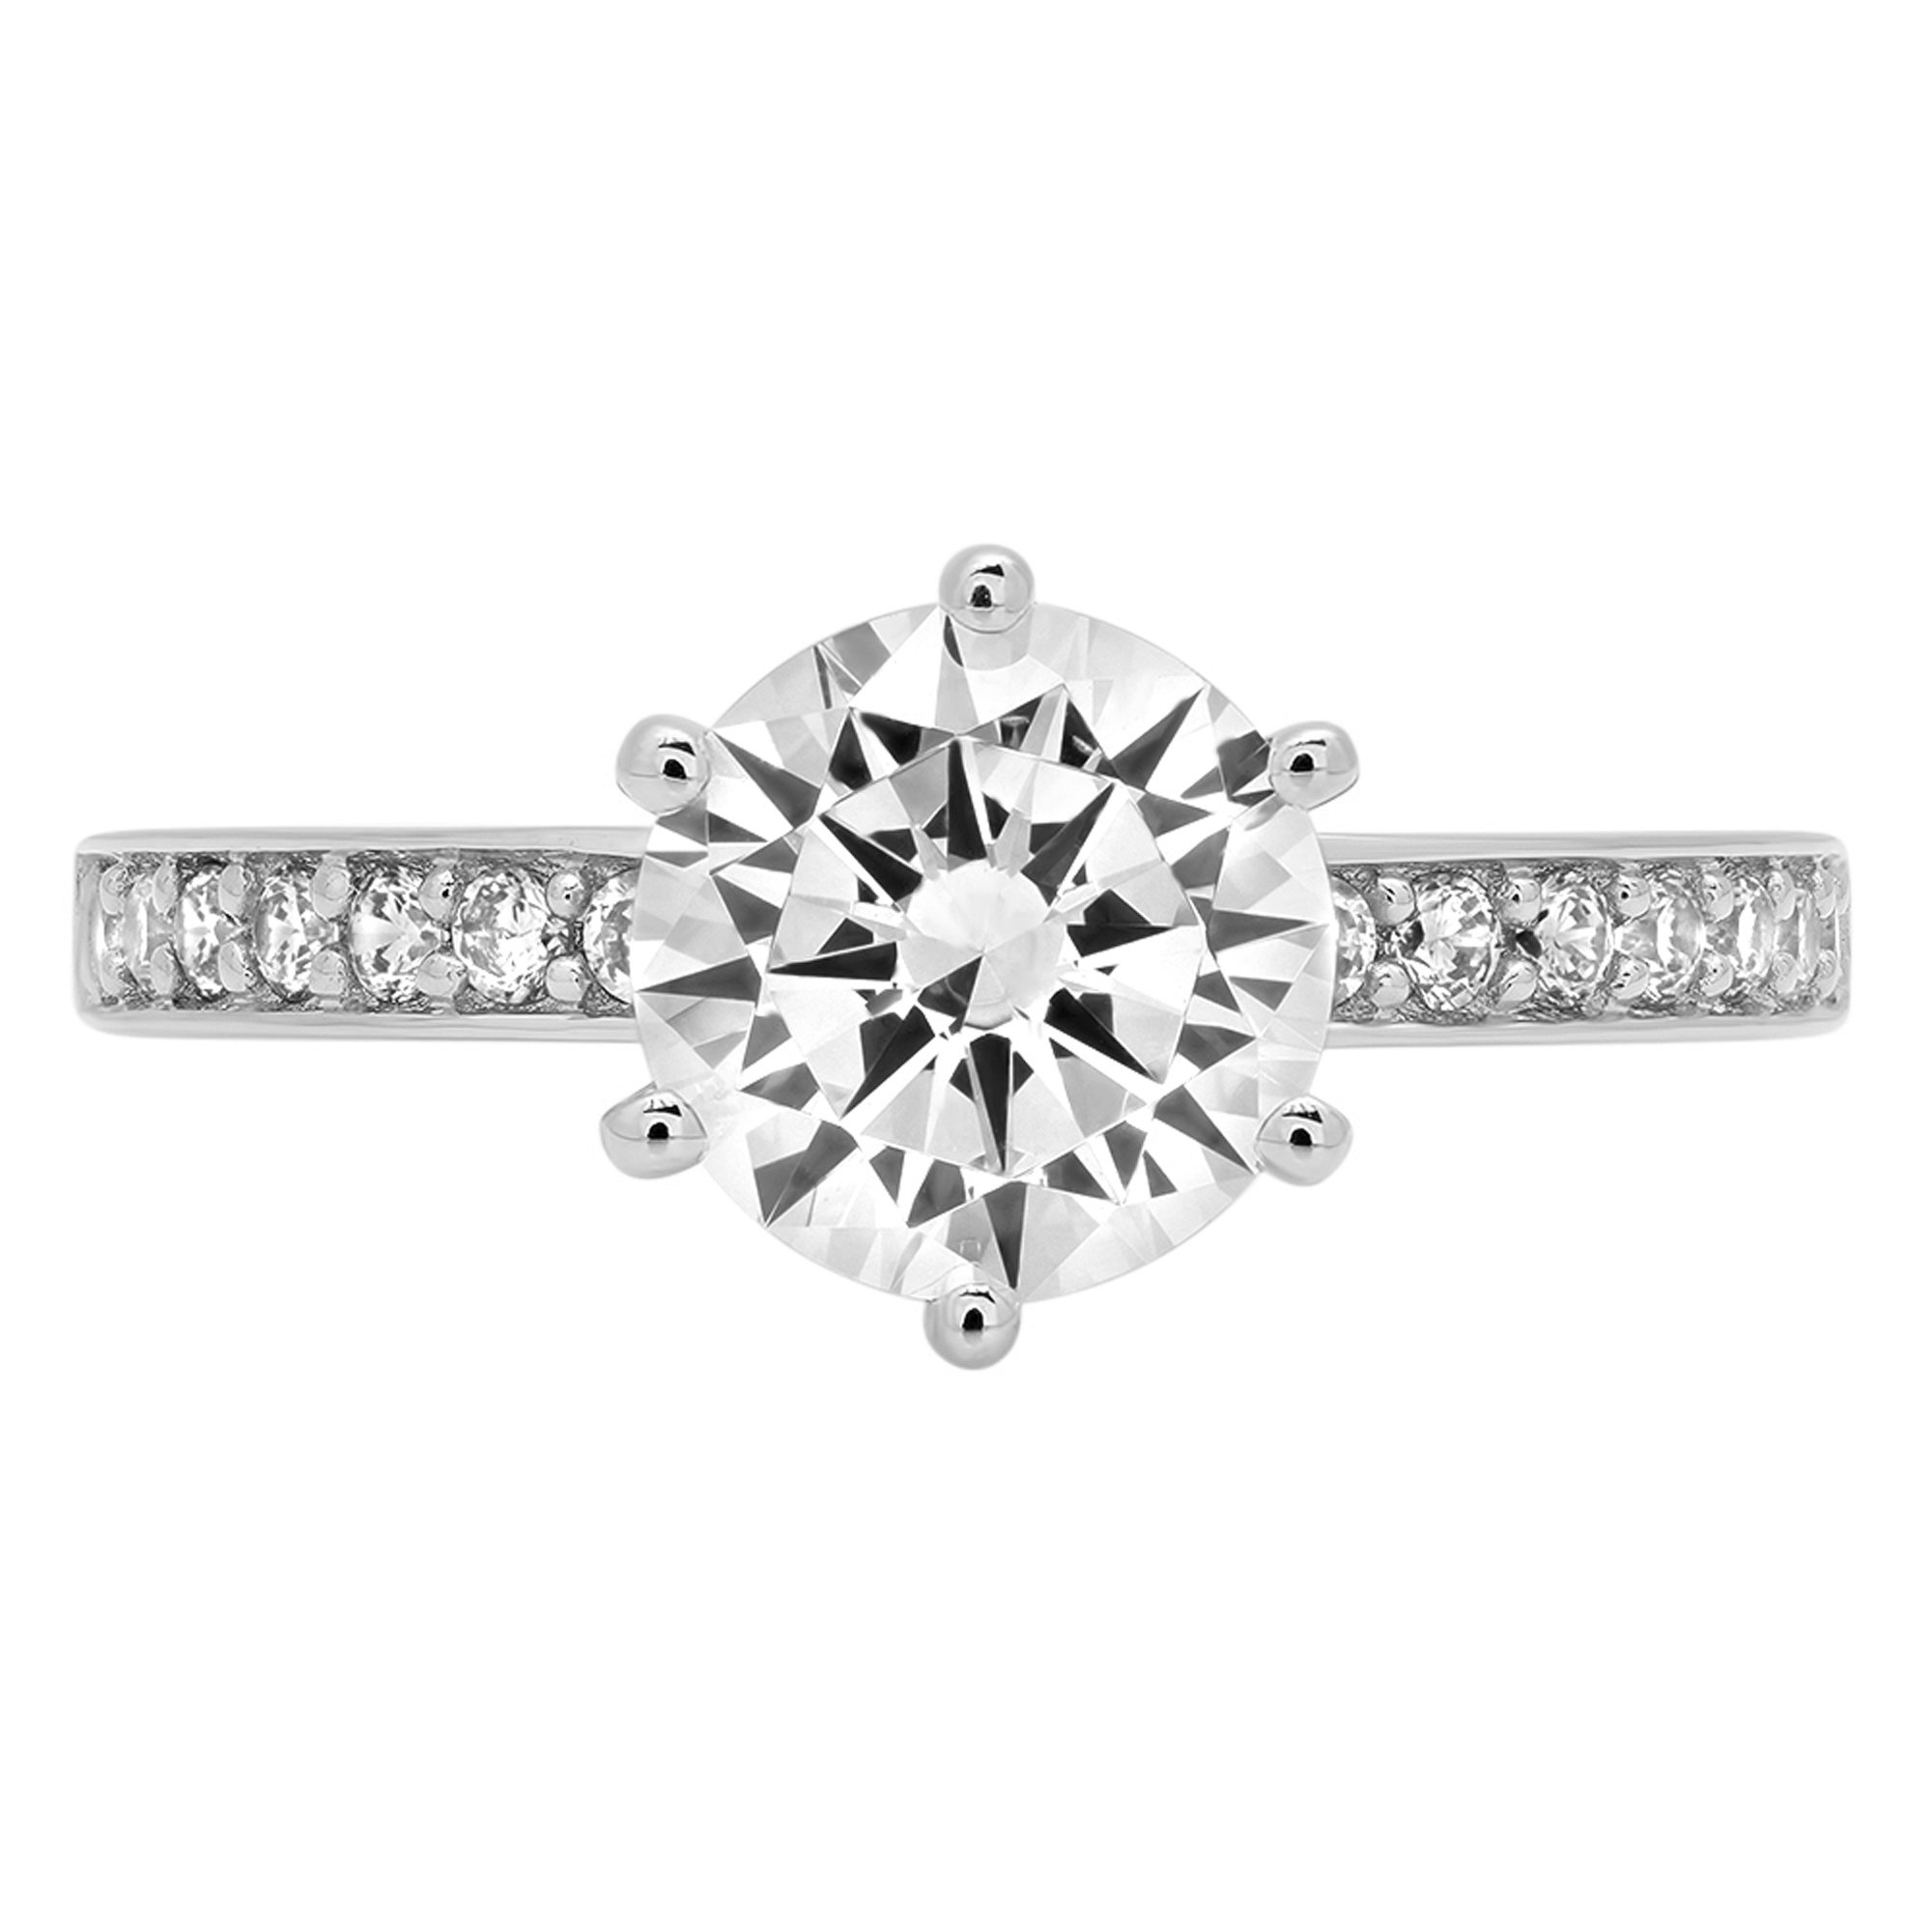 1.86ct Brilliant Round Cut Designer Accent Solitaire Promise Anniversary Statement Engagement Wedding Bridal Ring For Women Solid 14k White Gold, 6.25